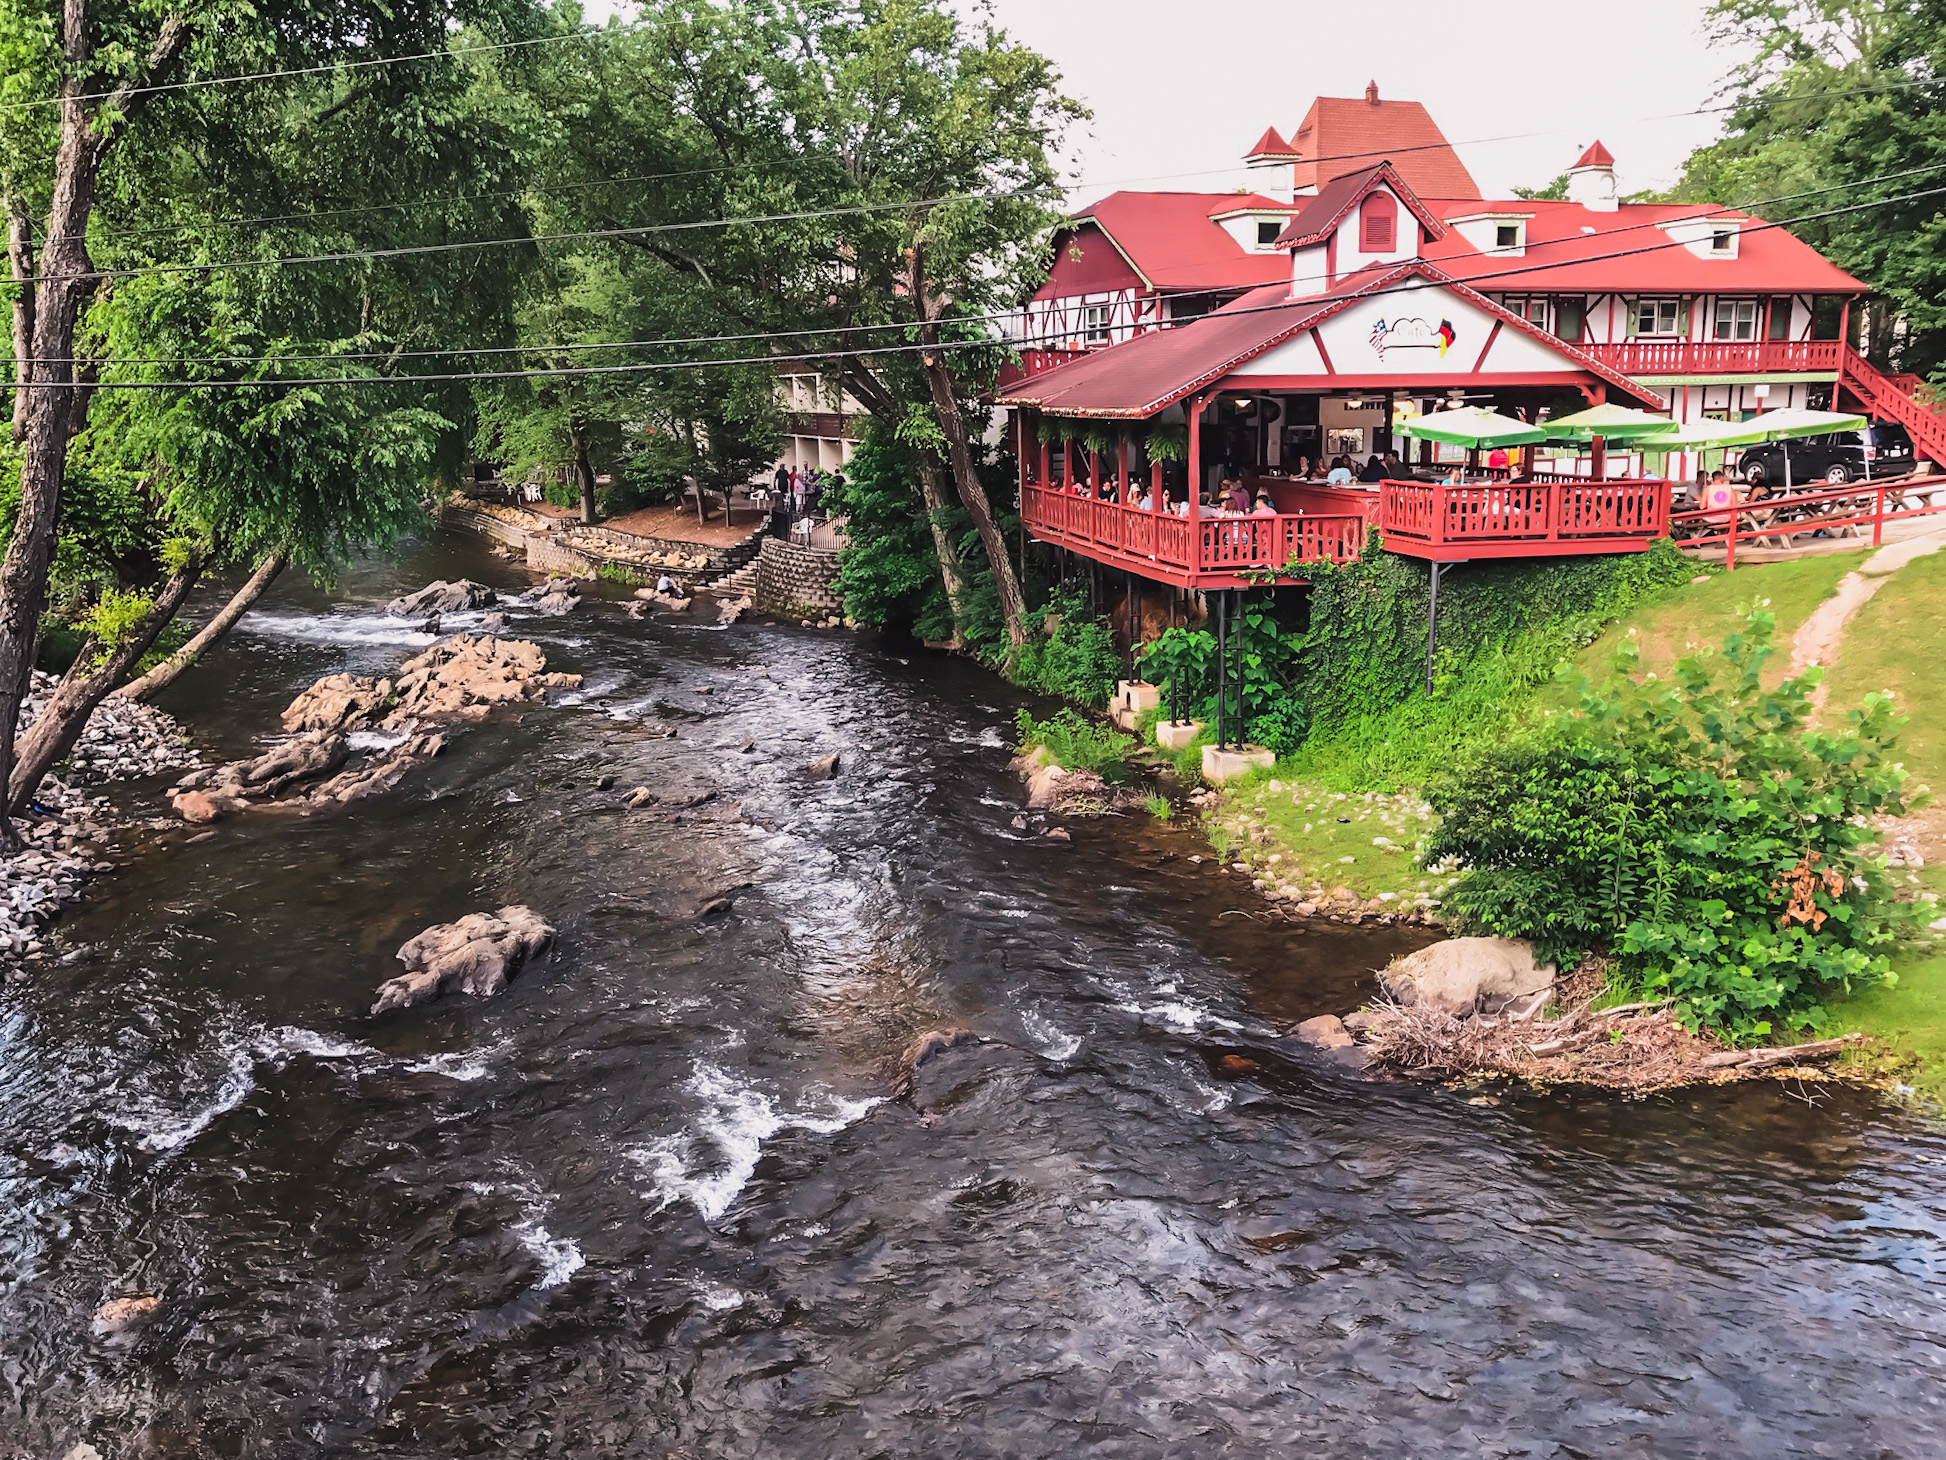 riverfront restaurants in the Bavarian town in Georgia